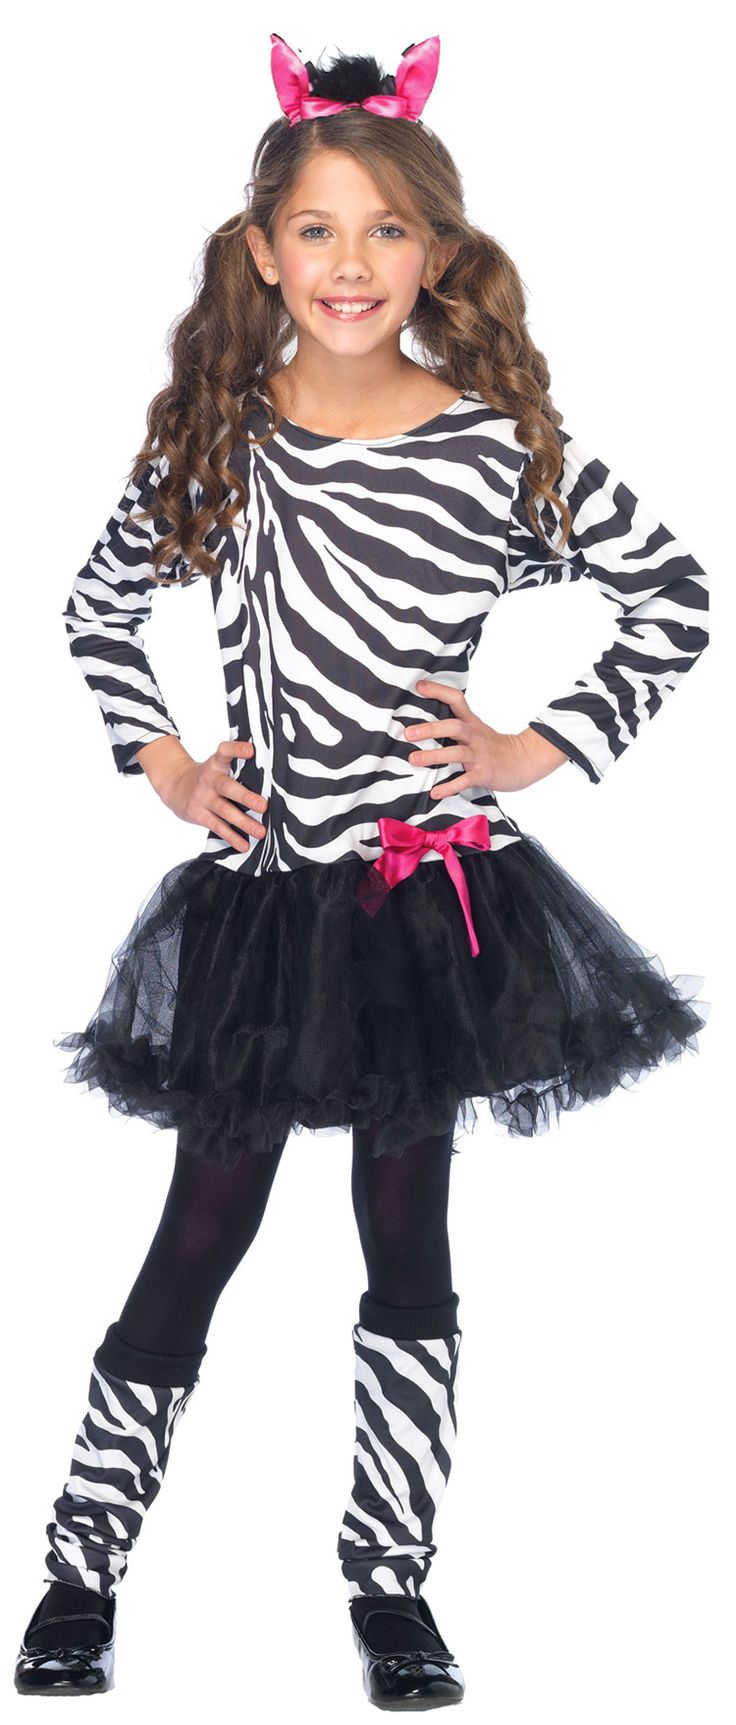 37 best Halloween costumes images on Pinterest